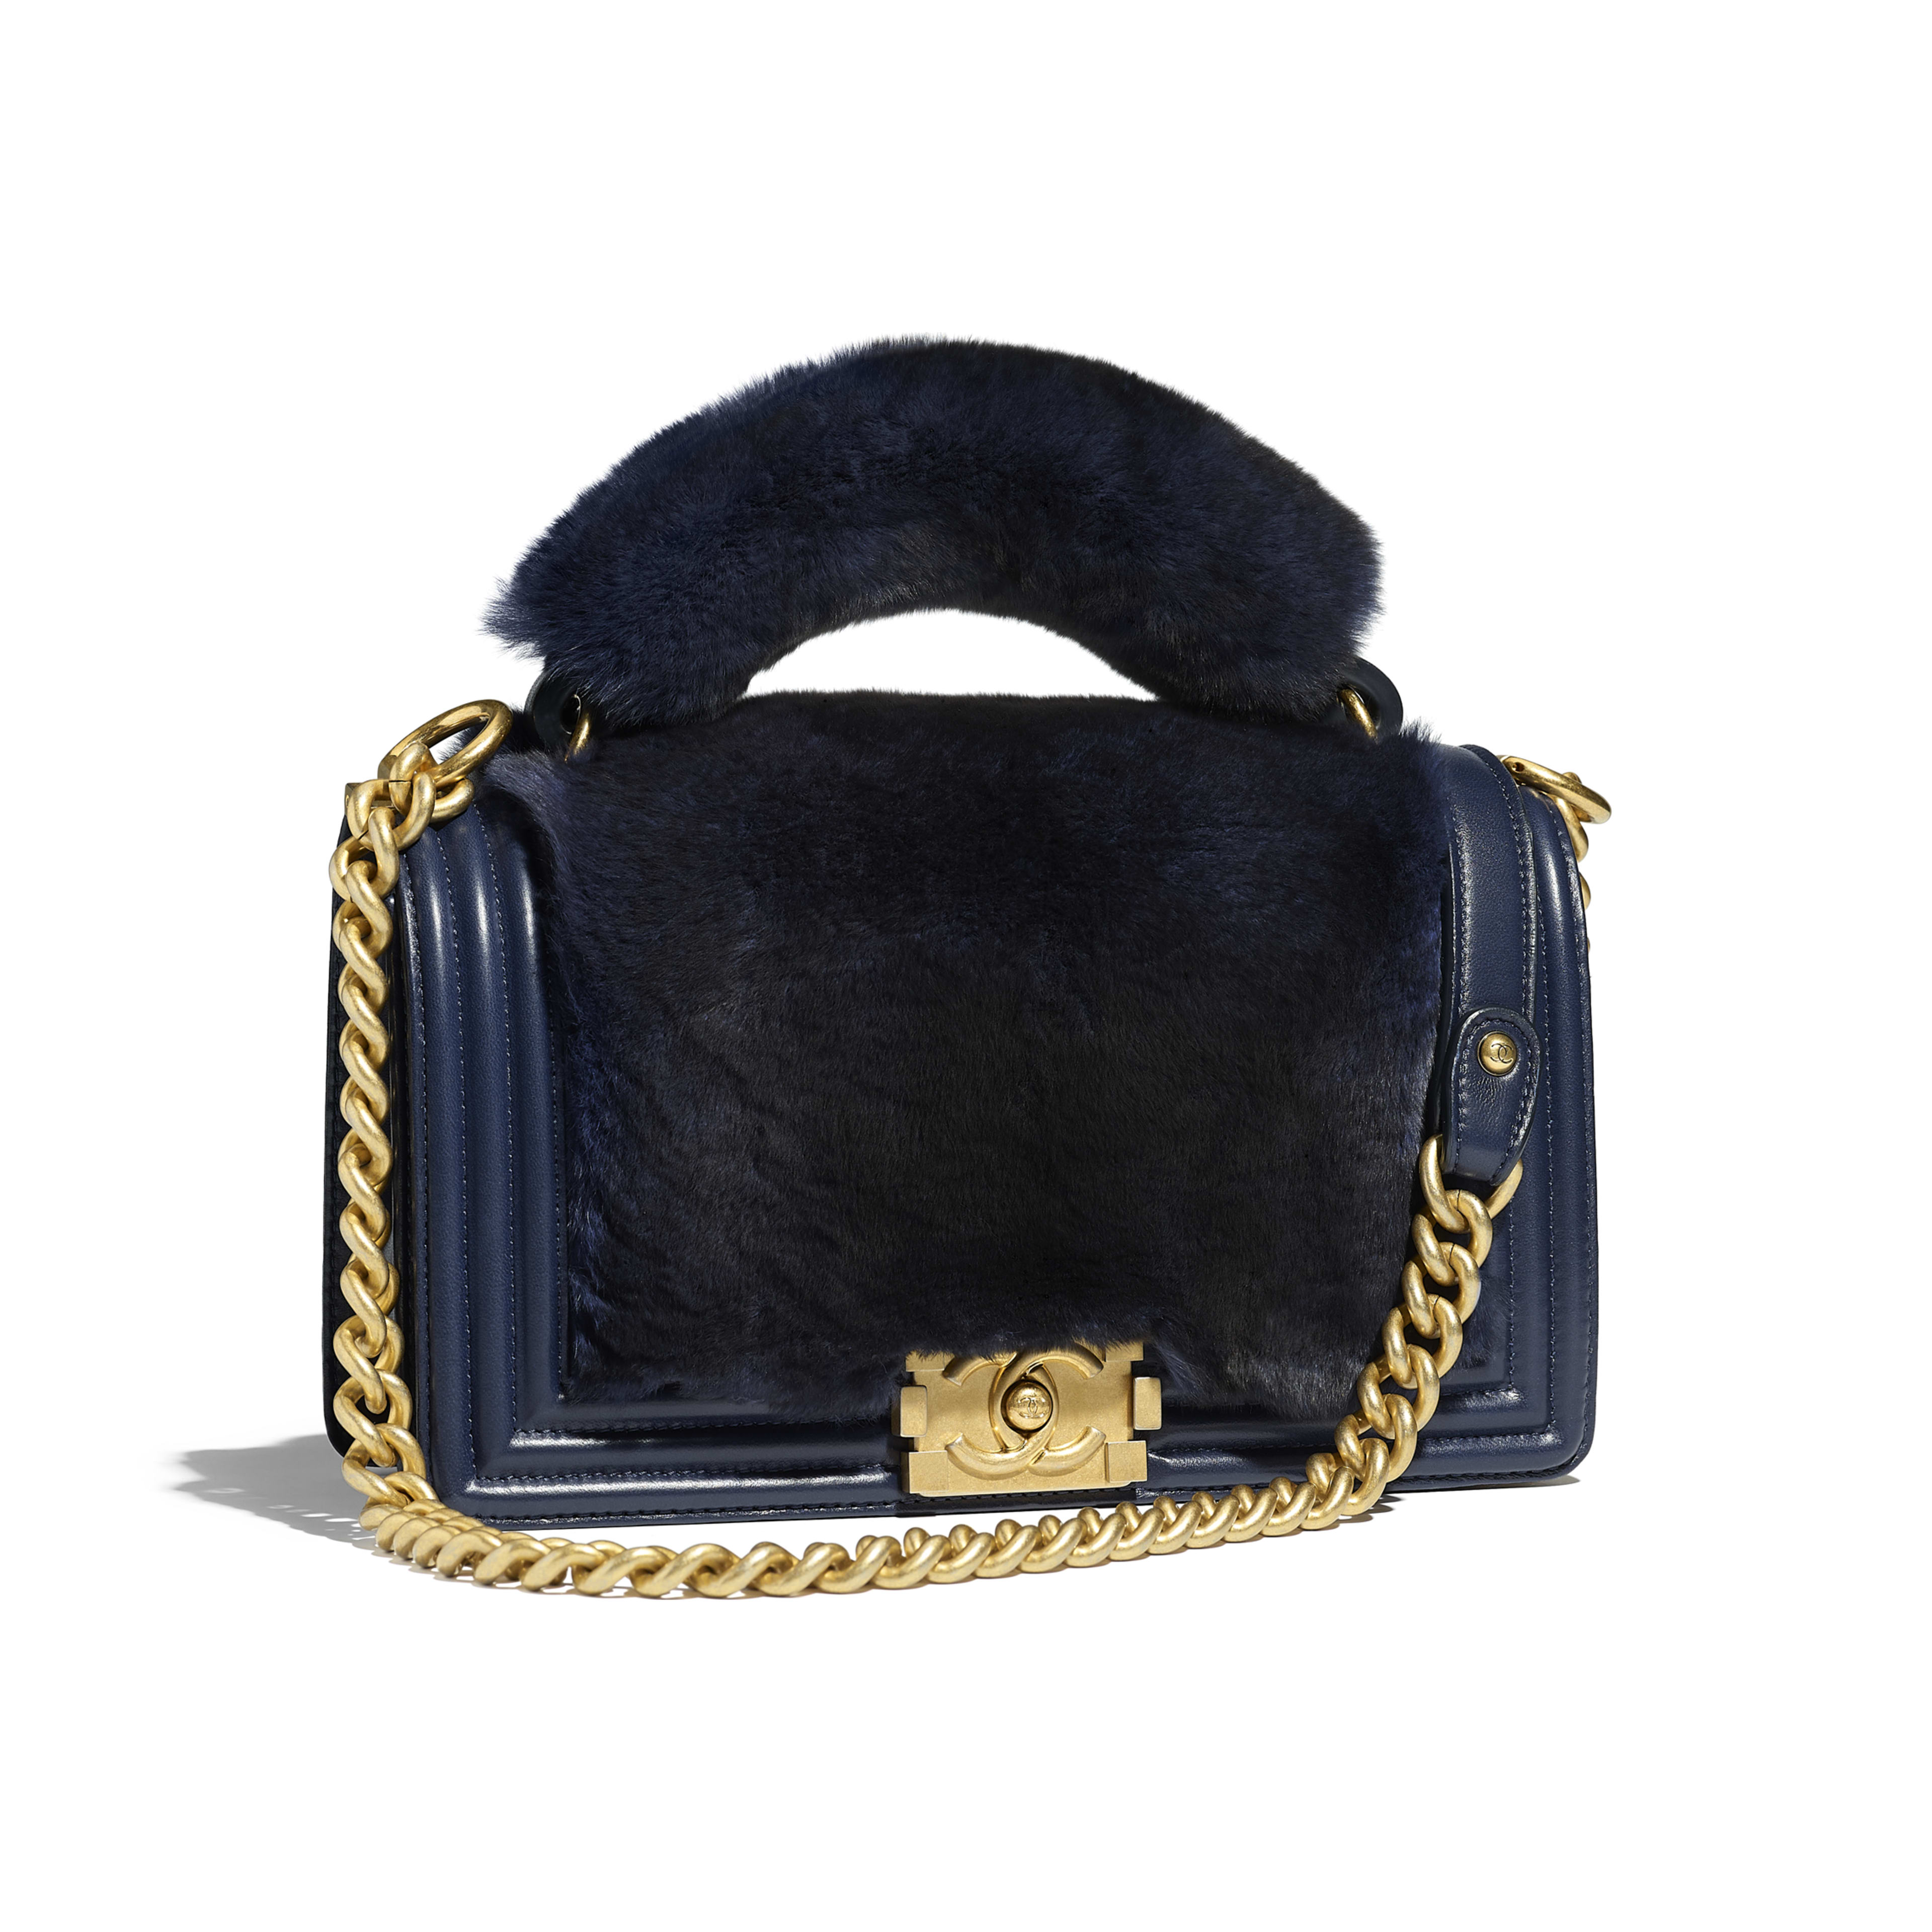 BOY CHANEL Flap Bag with Handle Orylag, Calfskin & Gold-Tone Metal Navy Blue -                                  view 1 - see full sized version